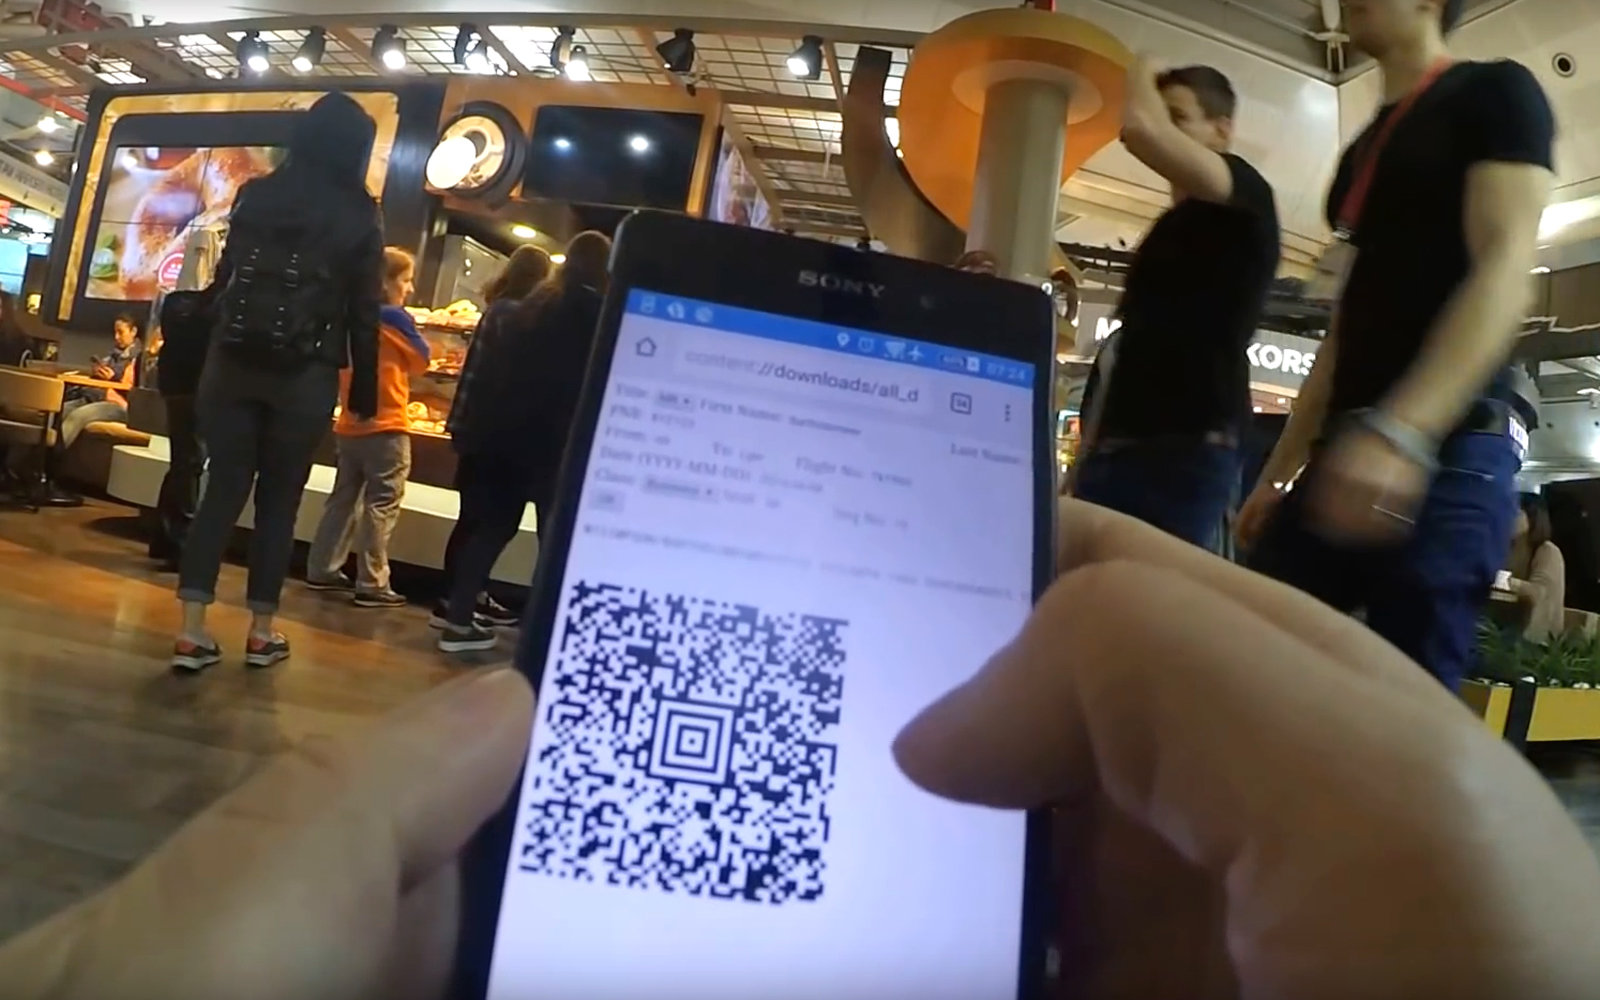 Hacker Created Fake Boarding Pass